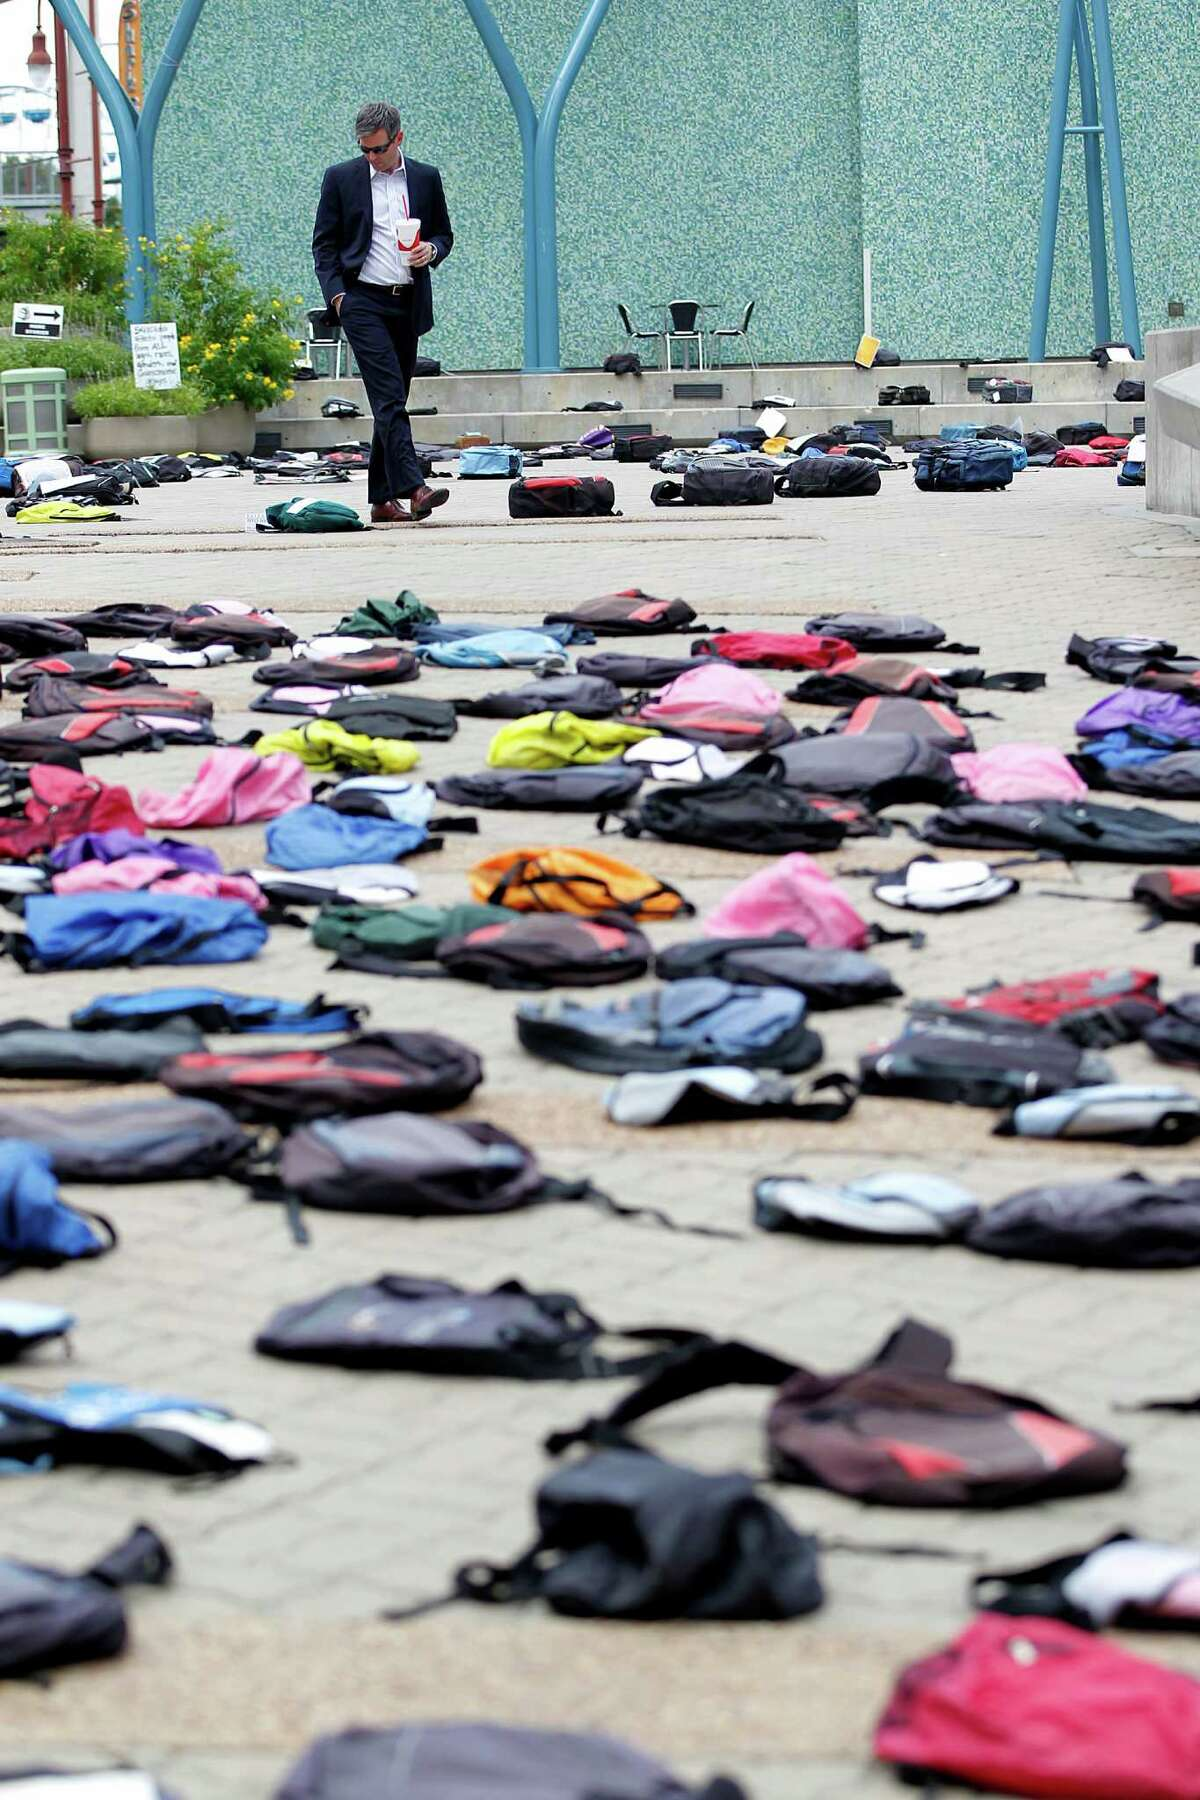 """Michael Norvell looks at the one of the 1,100 backpacks, many with personal stories, representing the estimated 1,100 college students who die by suicide each year at Jones Plaza Thursday, Oct. 2, 2014, in Houston. """"It's powerful,"""" Norvell said. The organization Send Silence Packing, a program of Active Minds, Inc., stopped in Houston for the day with their touring exhibit to brings awareness to students with mental health disorders. Suicide is the second leading cause of death for people ages 15-24 as stated by the organization Suicide Awareness Voices of Education."""